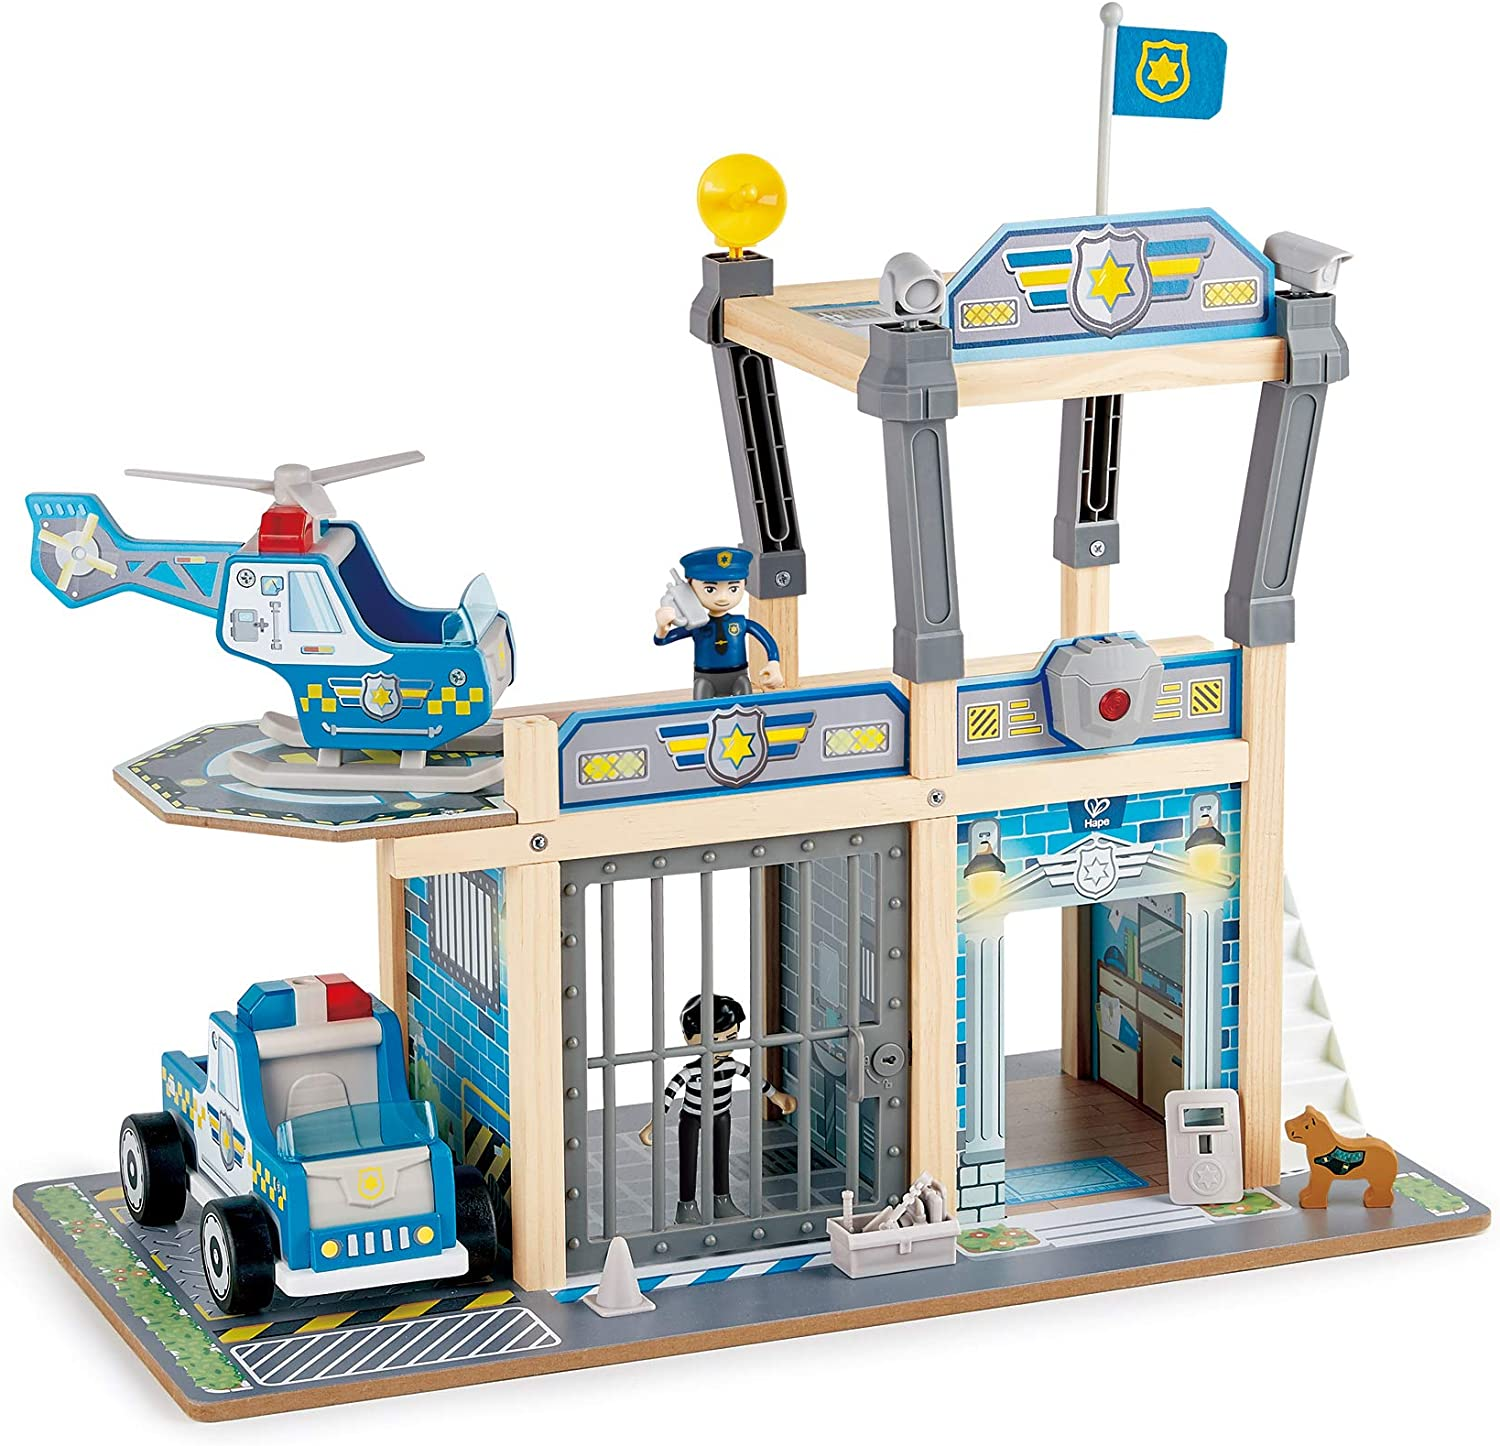 Hape Over Limited Special Price item handling Metro Police Station Playset